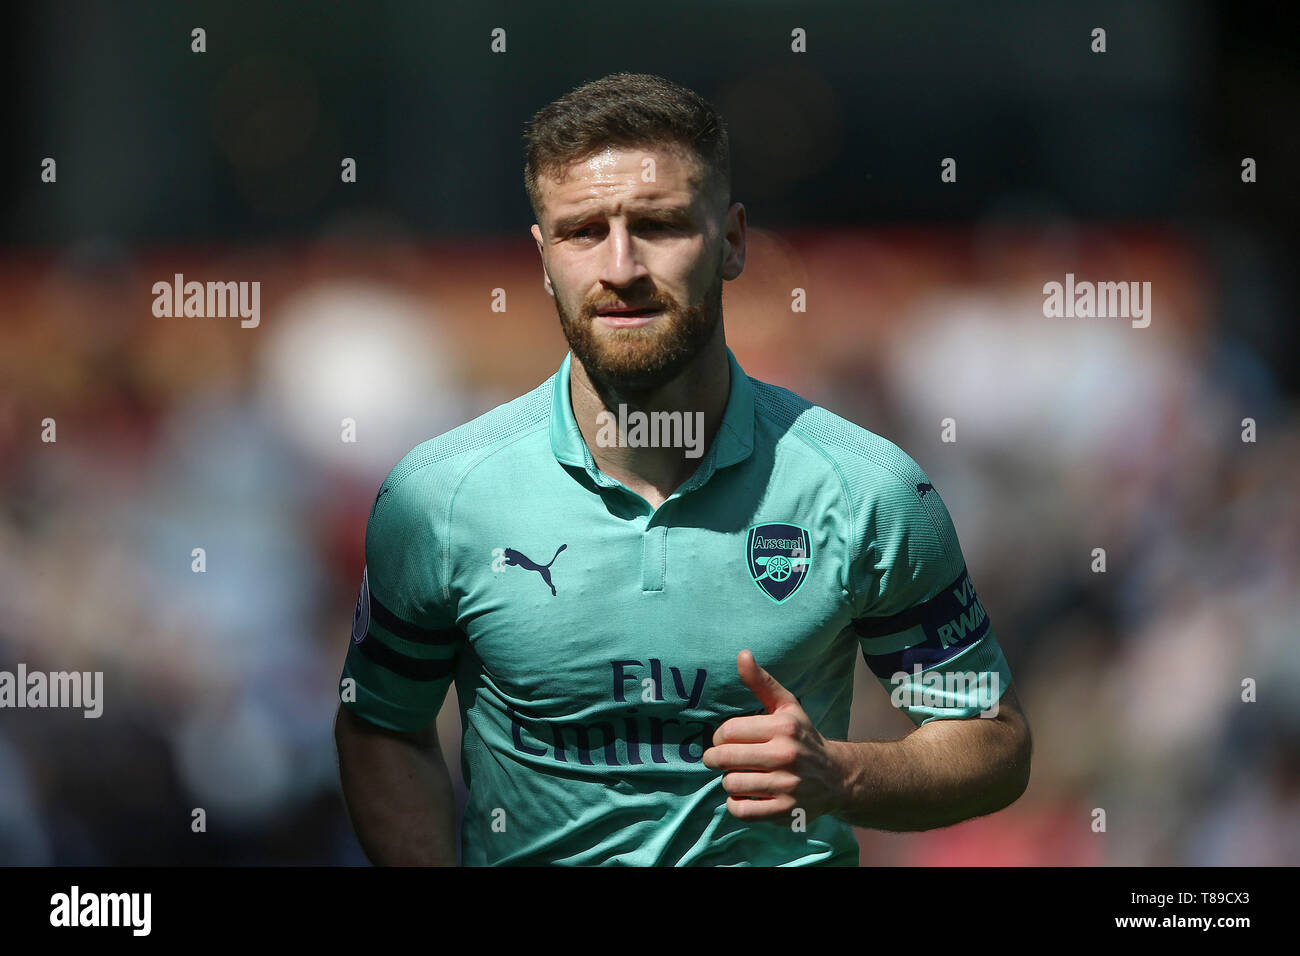 burnley-uk-12th-may-2019-shkodran-mustafi-of-arsenal-looks-on-premier-league-match-burnley-v-arsenal-at-turf-moor-in-burnley-lancashire-on-sunday-12th-may-2019-this-image-may-only-be-used-for-editorial-purposes-editorial-use-only-license-required-for-commercial-use-no-use-in-betting-games-or-a-single-clubleagueplayer-publications-credit-andrew-orchard-sports-photographyalamy-live-news-T89CX3.jpg